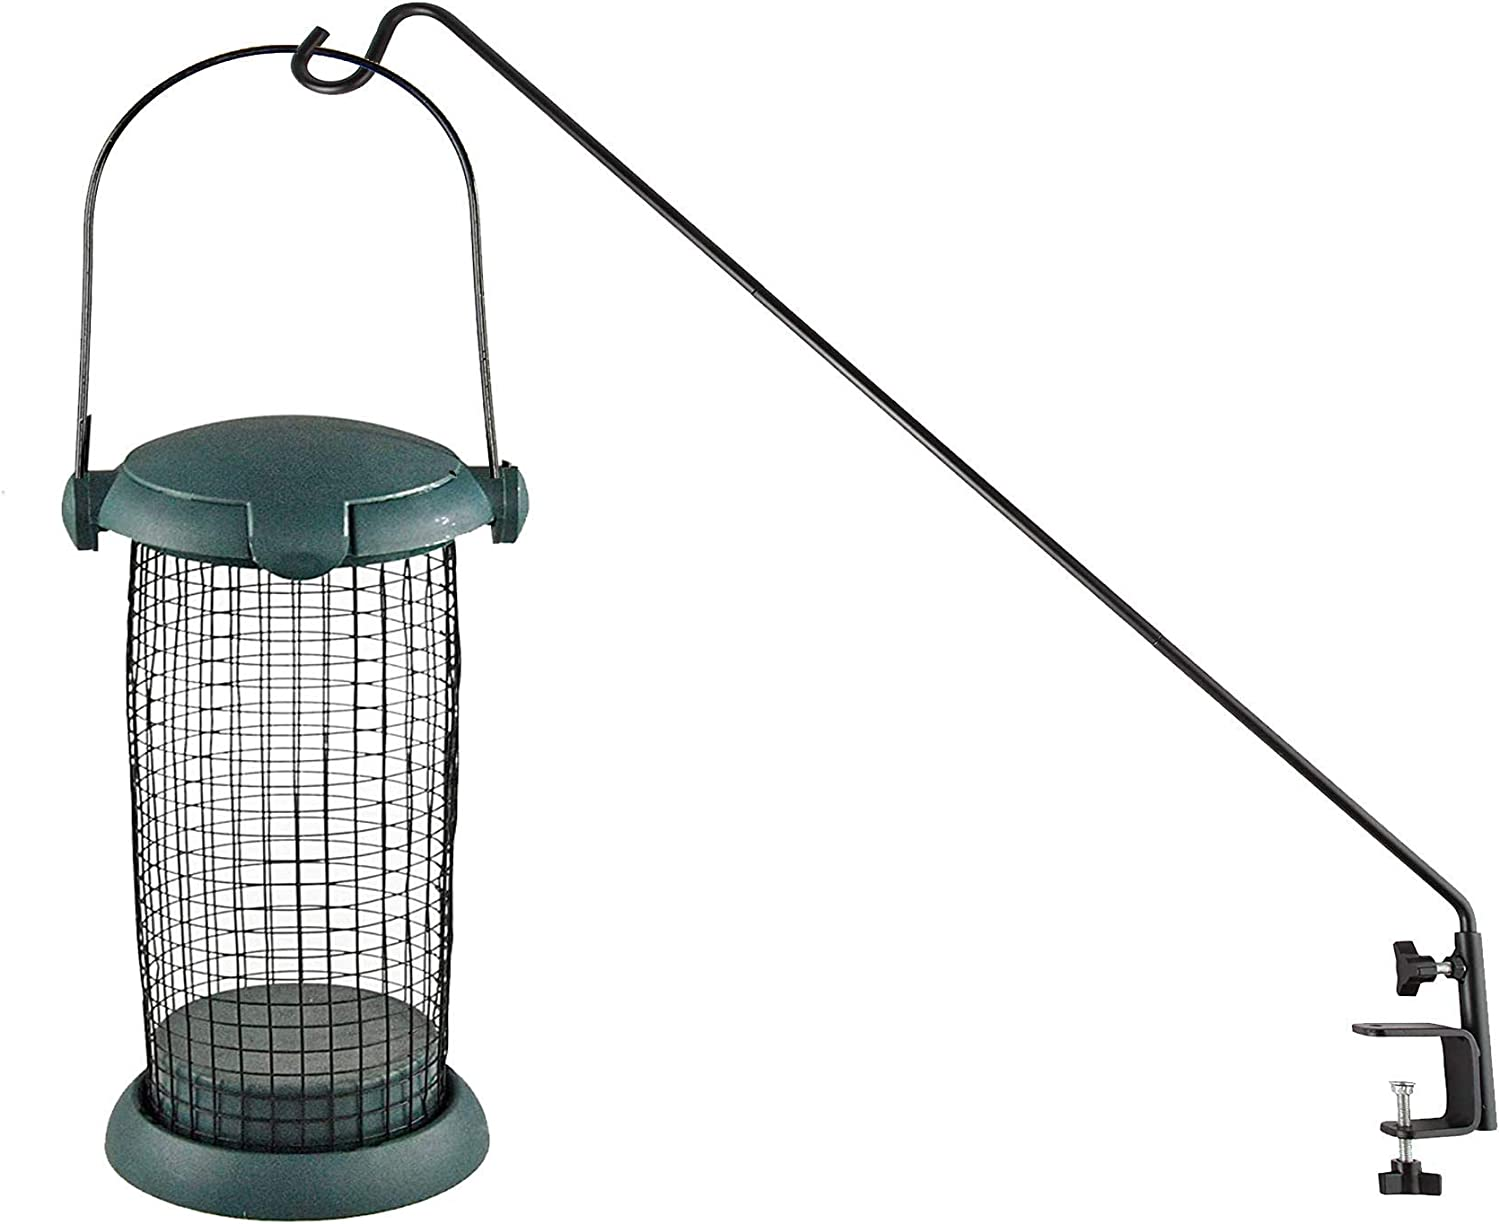 Home-X Extended Reach Deck Hook Expandable with Clamp On Bracket and Small Mesh Hanging Bird Feeder Tube, Outdoor Bird Perch, Green